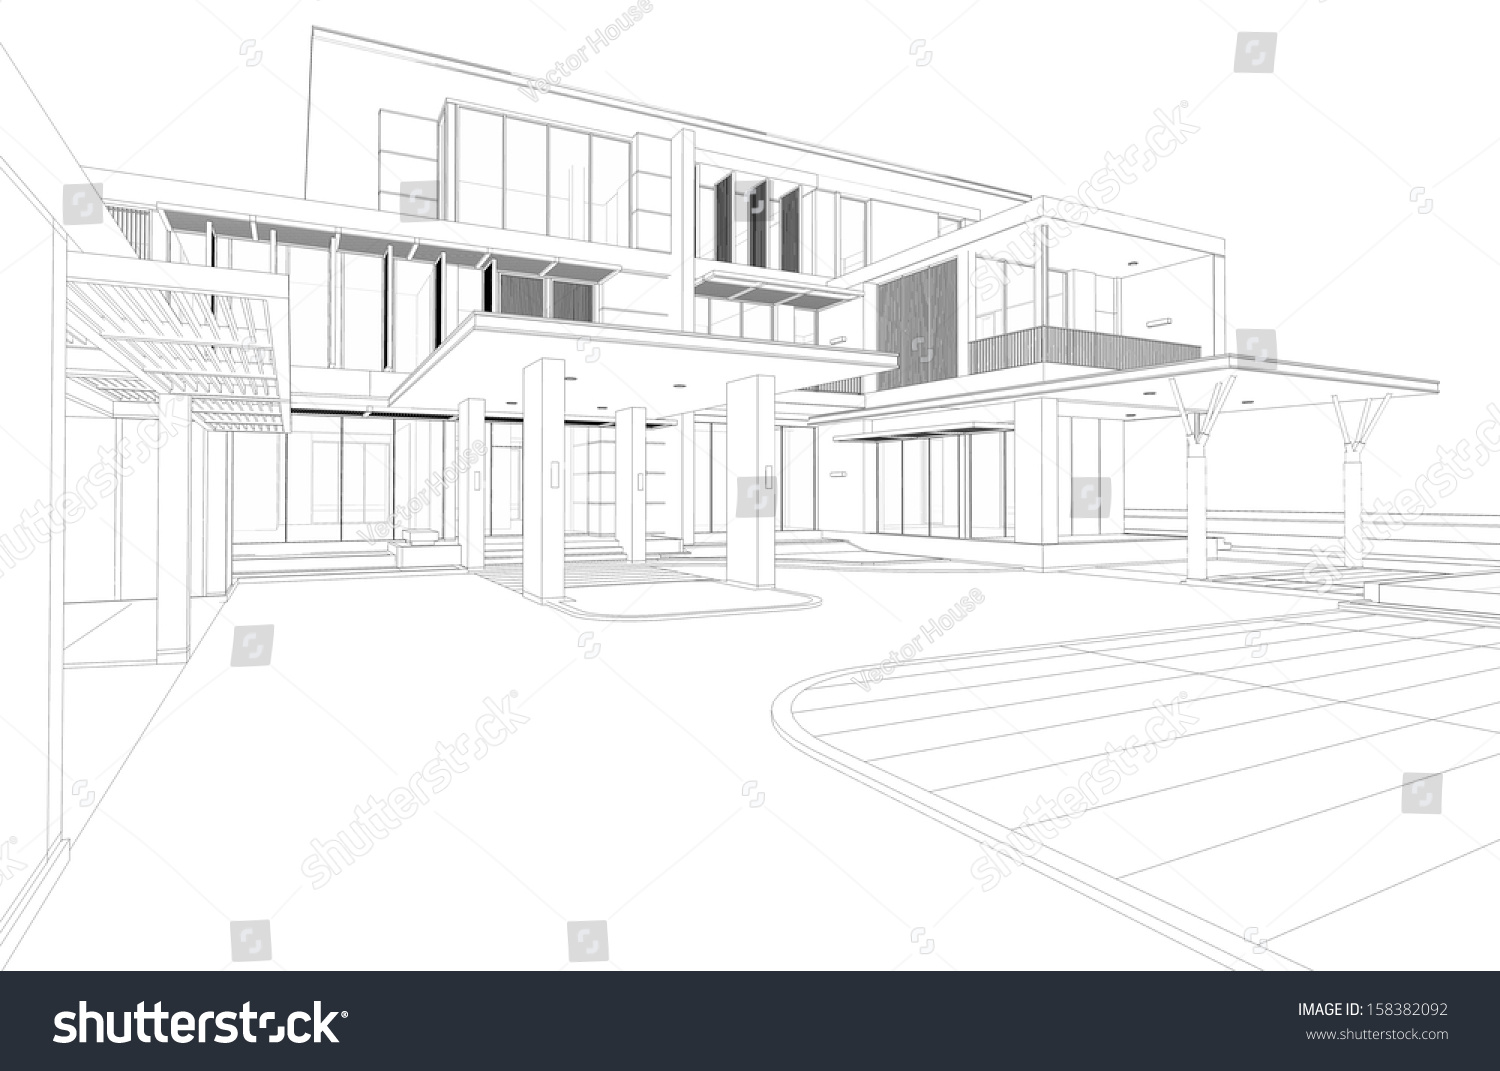 Wireframe Drawing Of ropical Modern House - 3d ender Of Building ... - ^